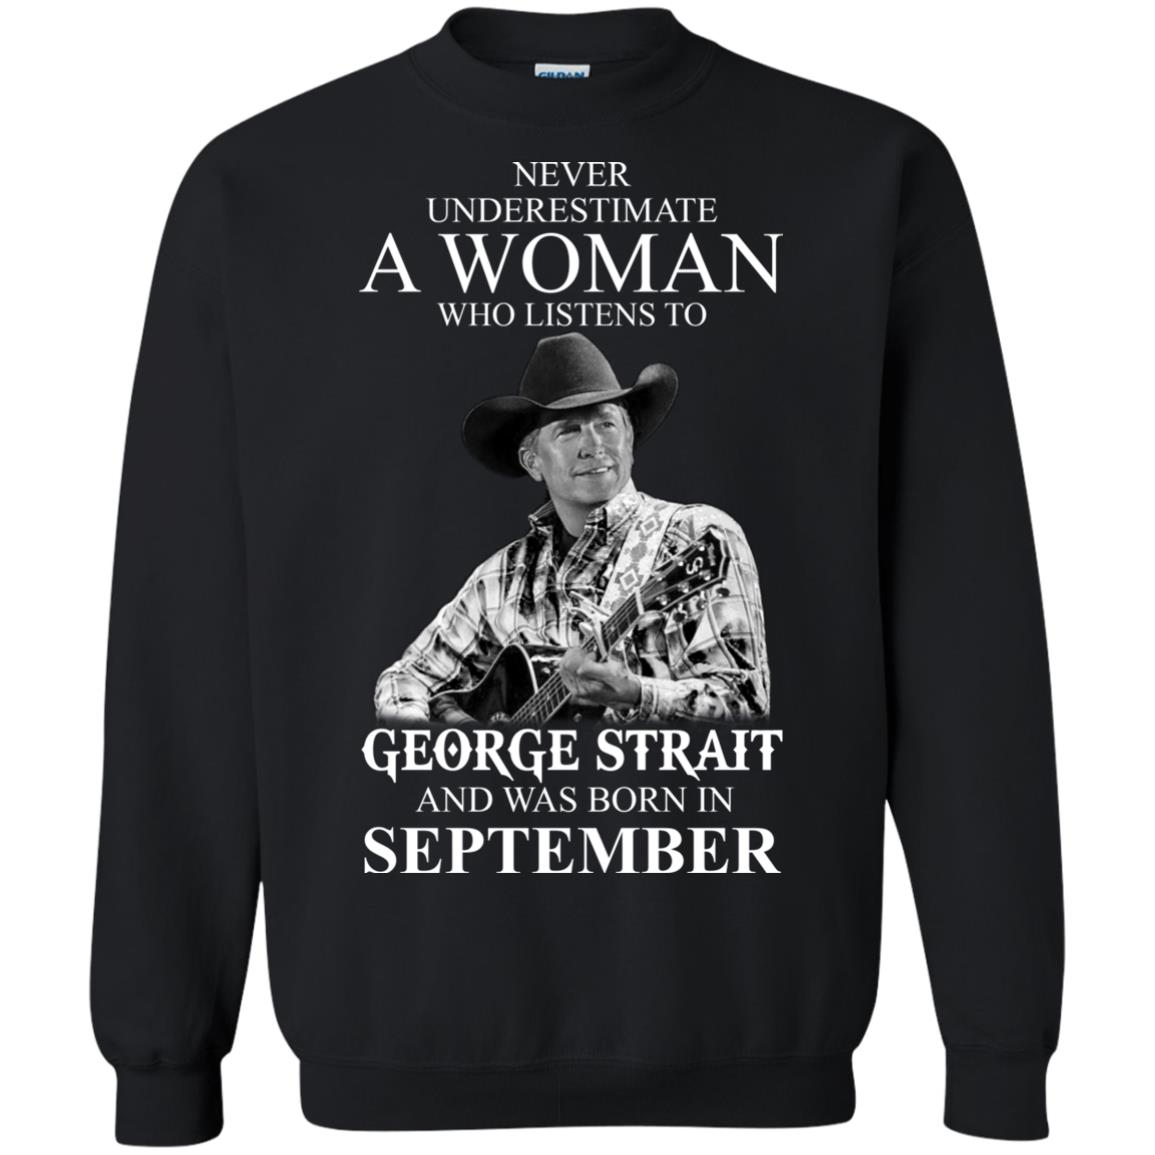 image 380 - Never Underestimate A Woman Who Listens To George Strait And Was Born In September shirt